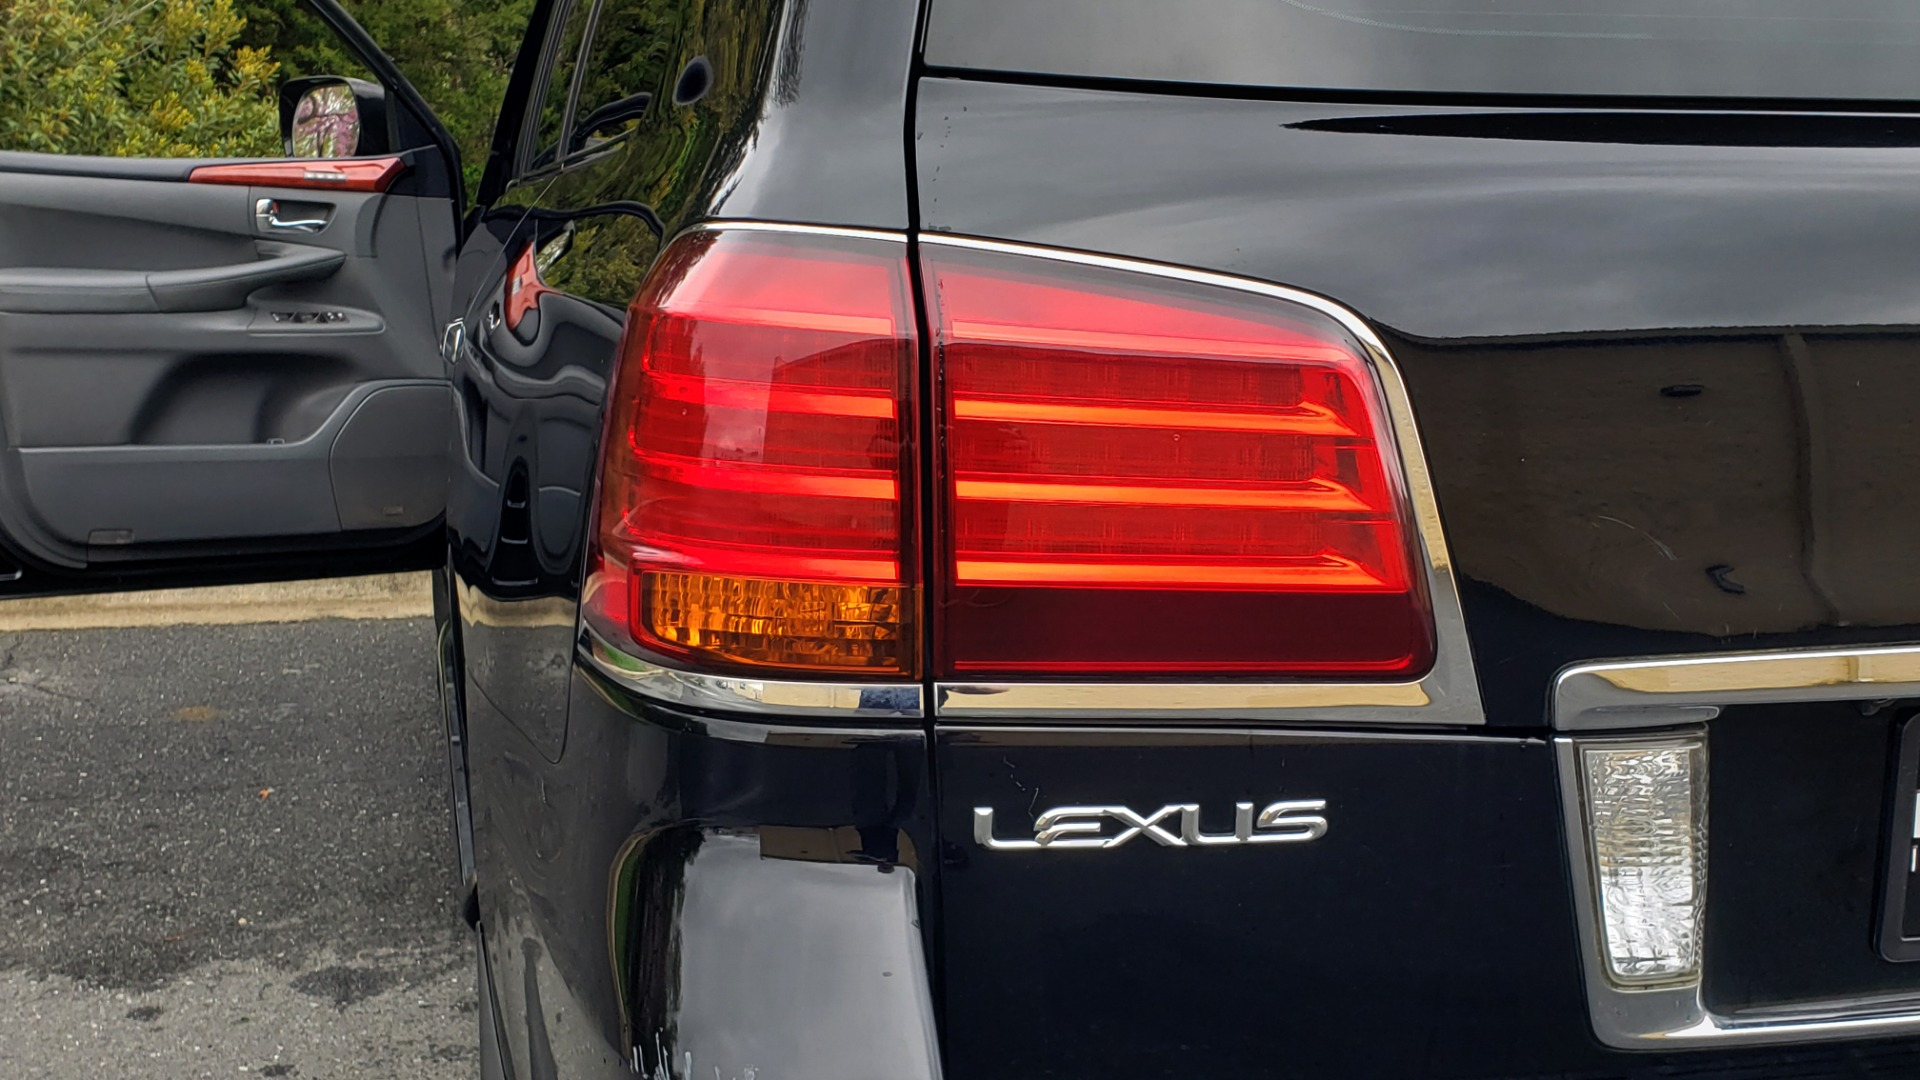 Used 2008 Lexus LX 570 4WD / TECH PKG / NAV / SUNROOF / MARK LEVINSON / PARK ASST for sale $22,995 at Formula Imports in Charlotte NC 28227 29